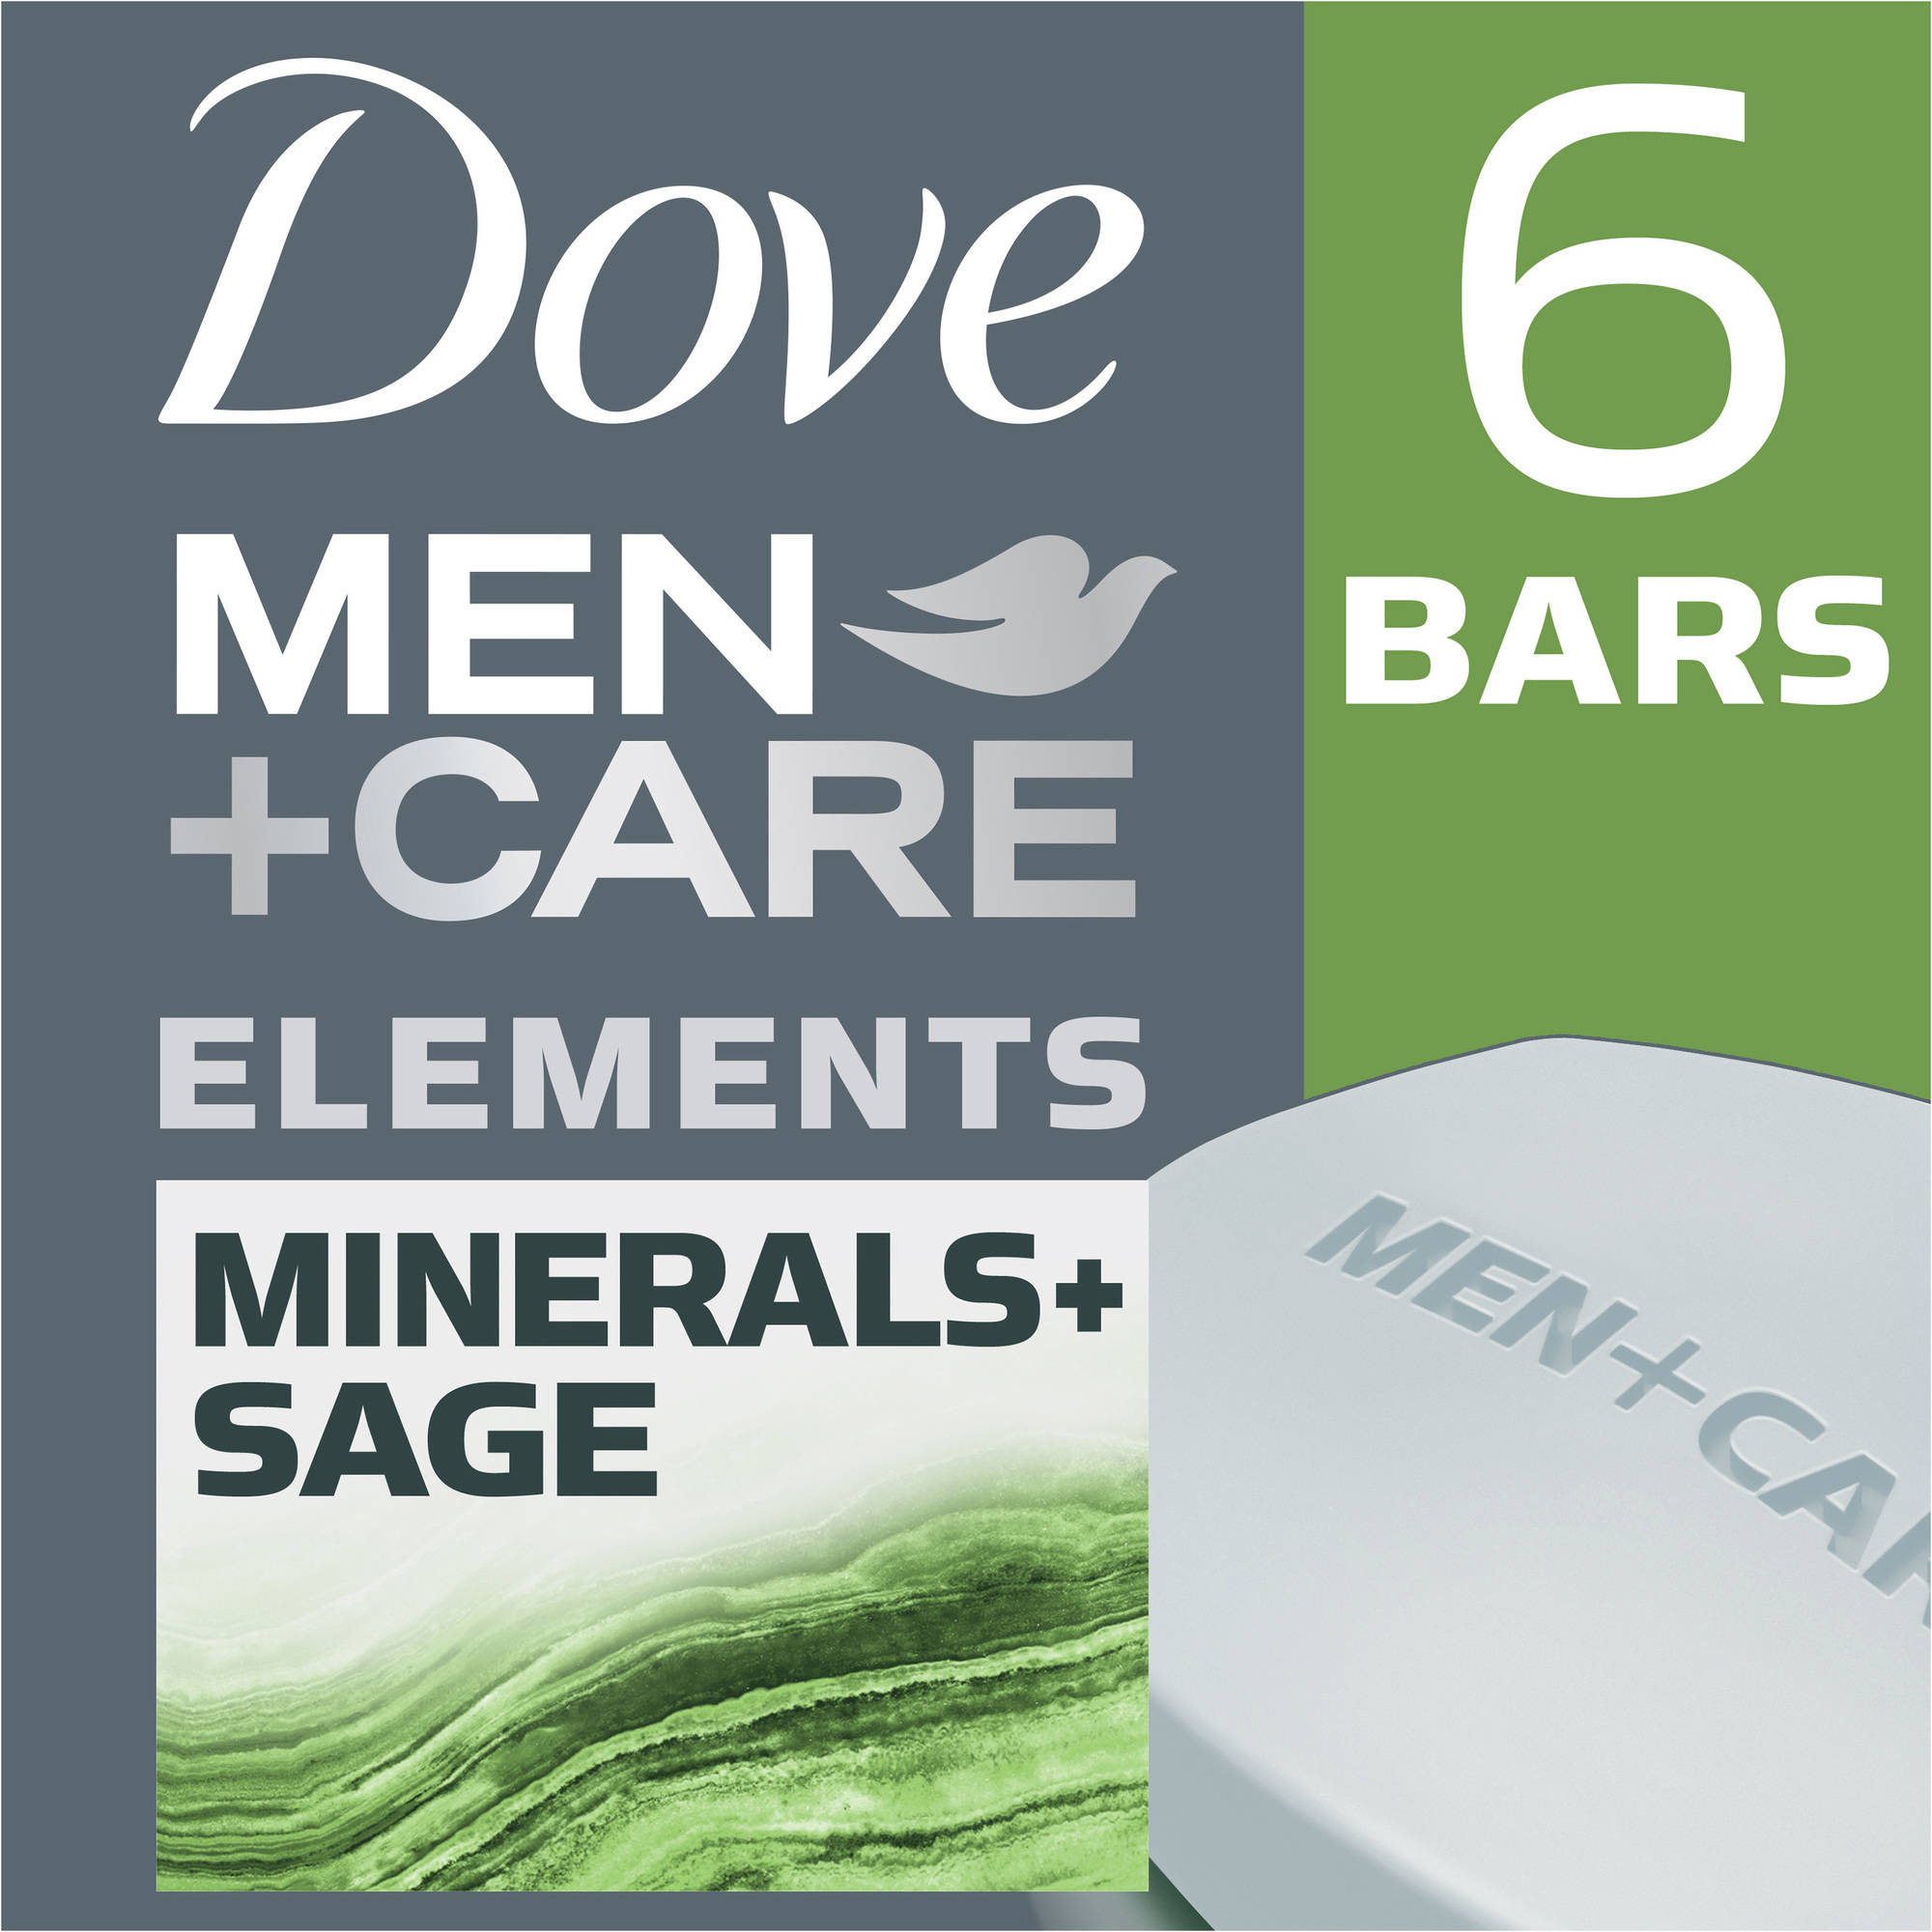 Dove Men+Care Body and Face Bar Minerals + Sage 4 oz, 6 Bar